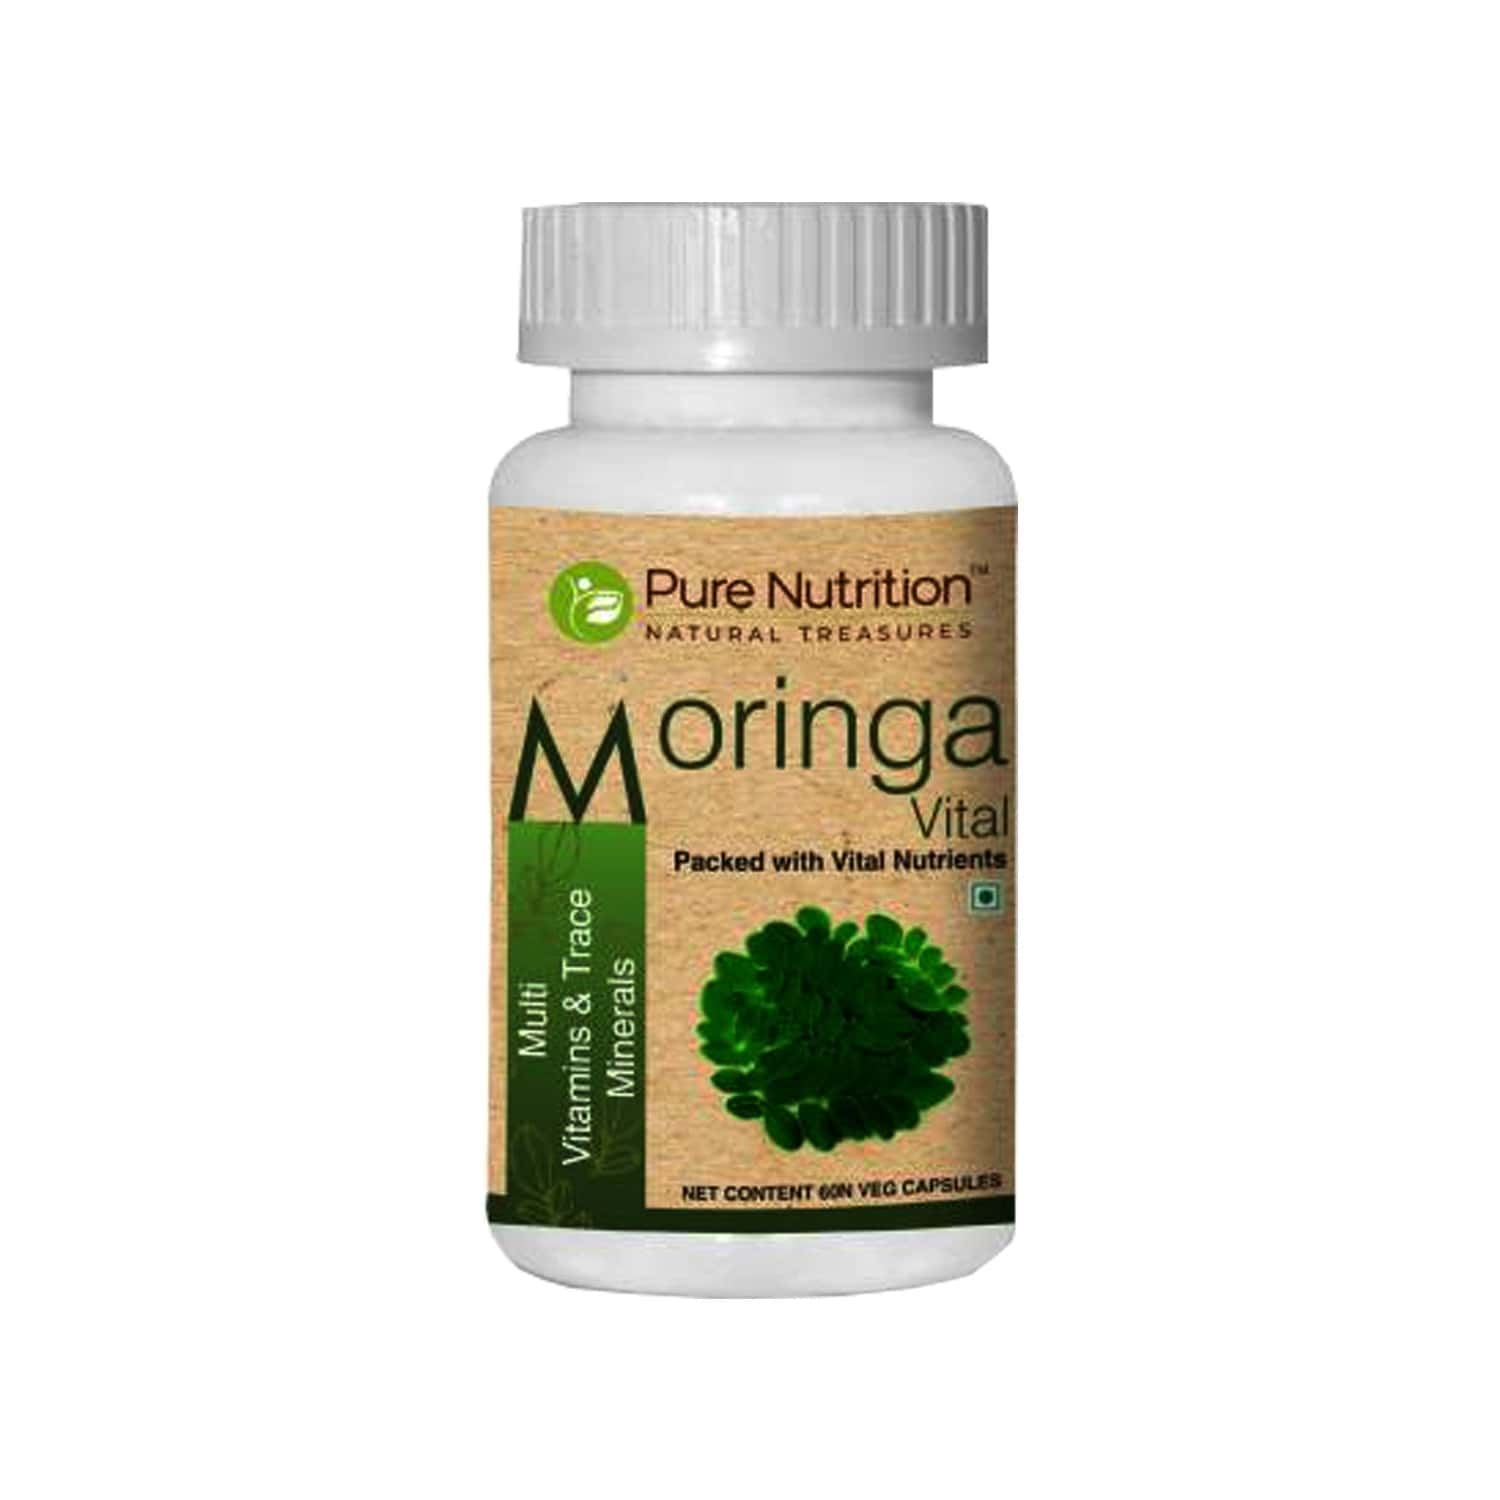 Pure Nutrition Moringa Vital Multivitamin Capsule Superfood, Natural Multivitamin, Increase Physical Energy, Rich In Iron & Essential Nutrients - 60 Veg Capsule